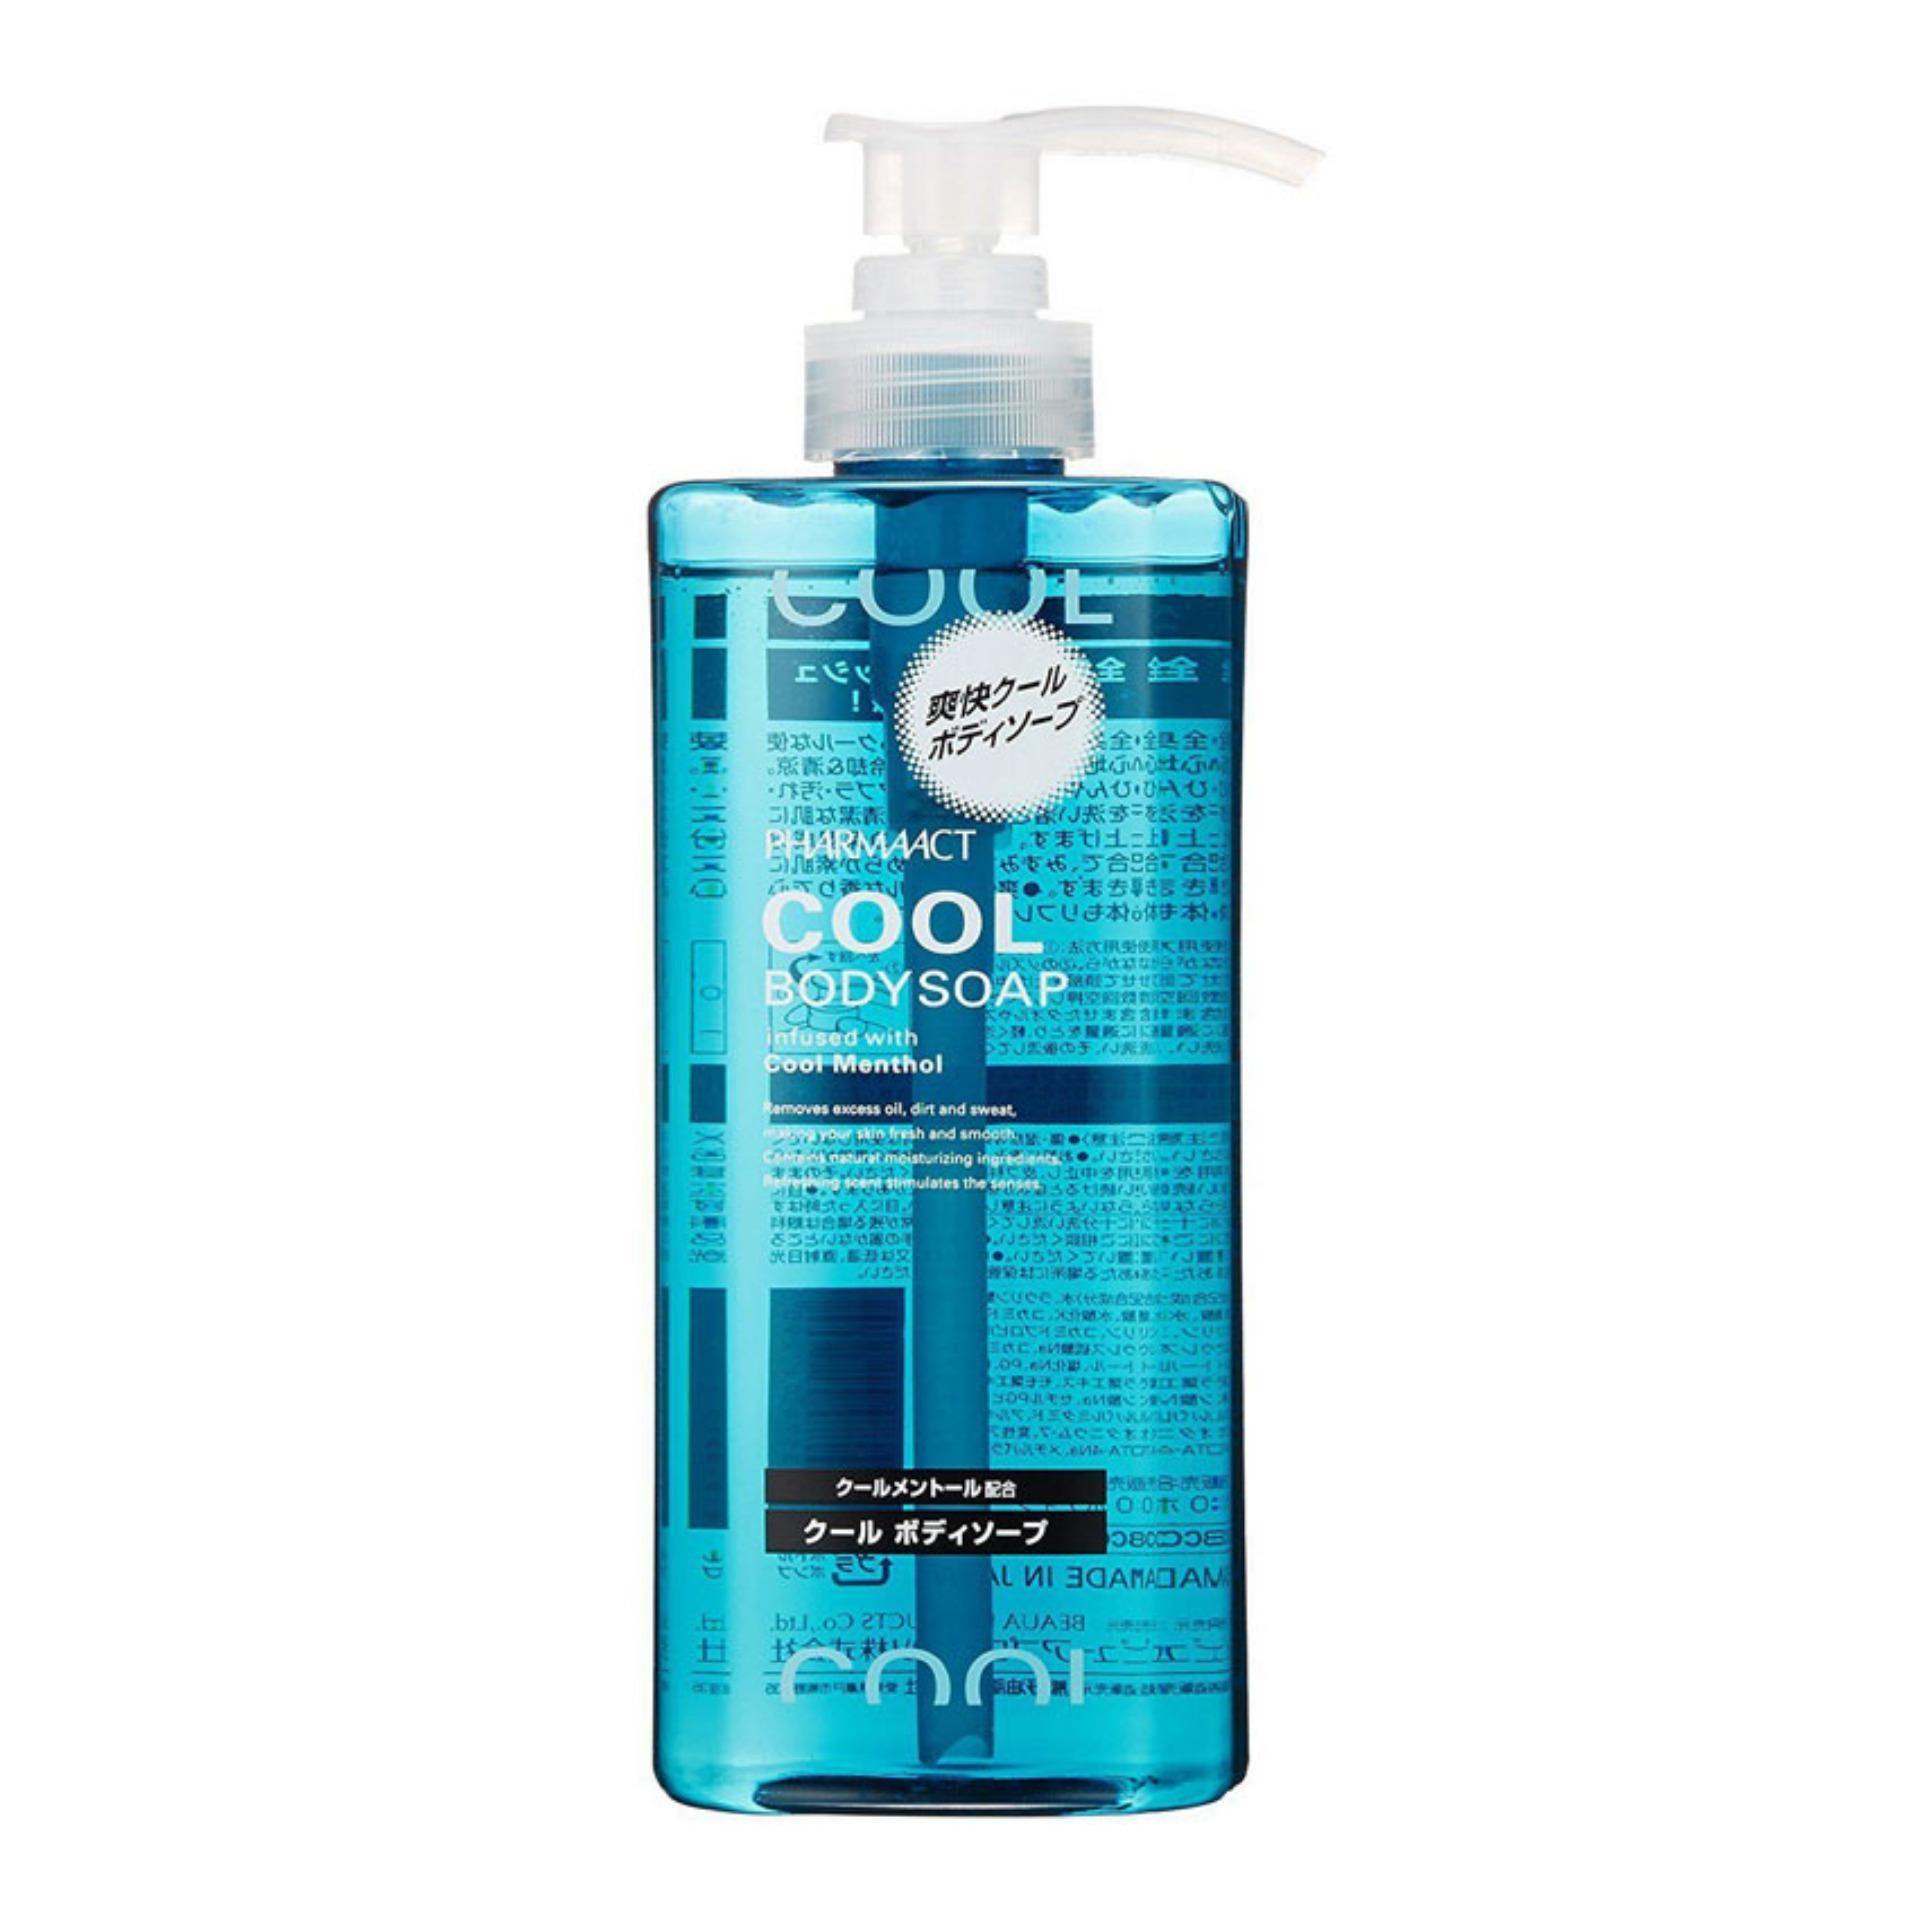 Sữa tắm Pharmaact Cool Body Soap 600ml (PCS)